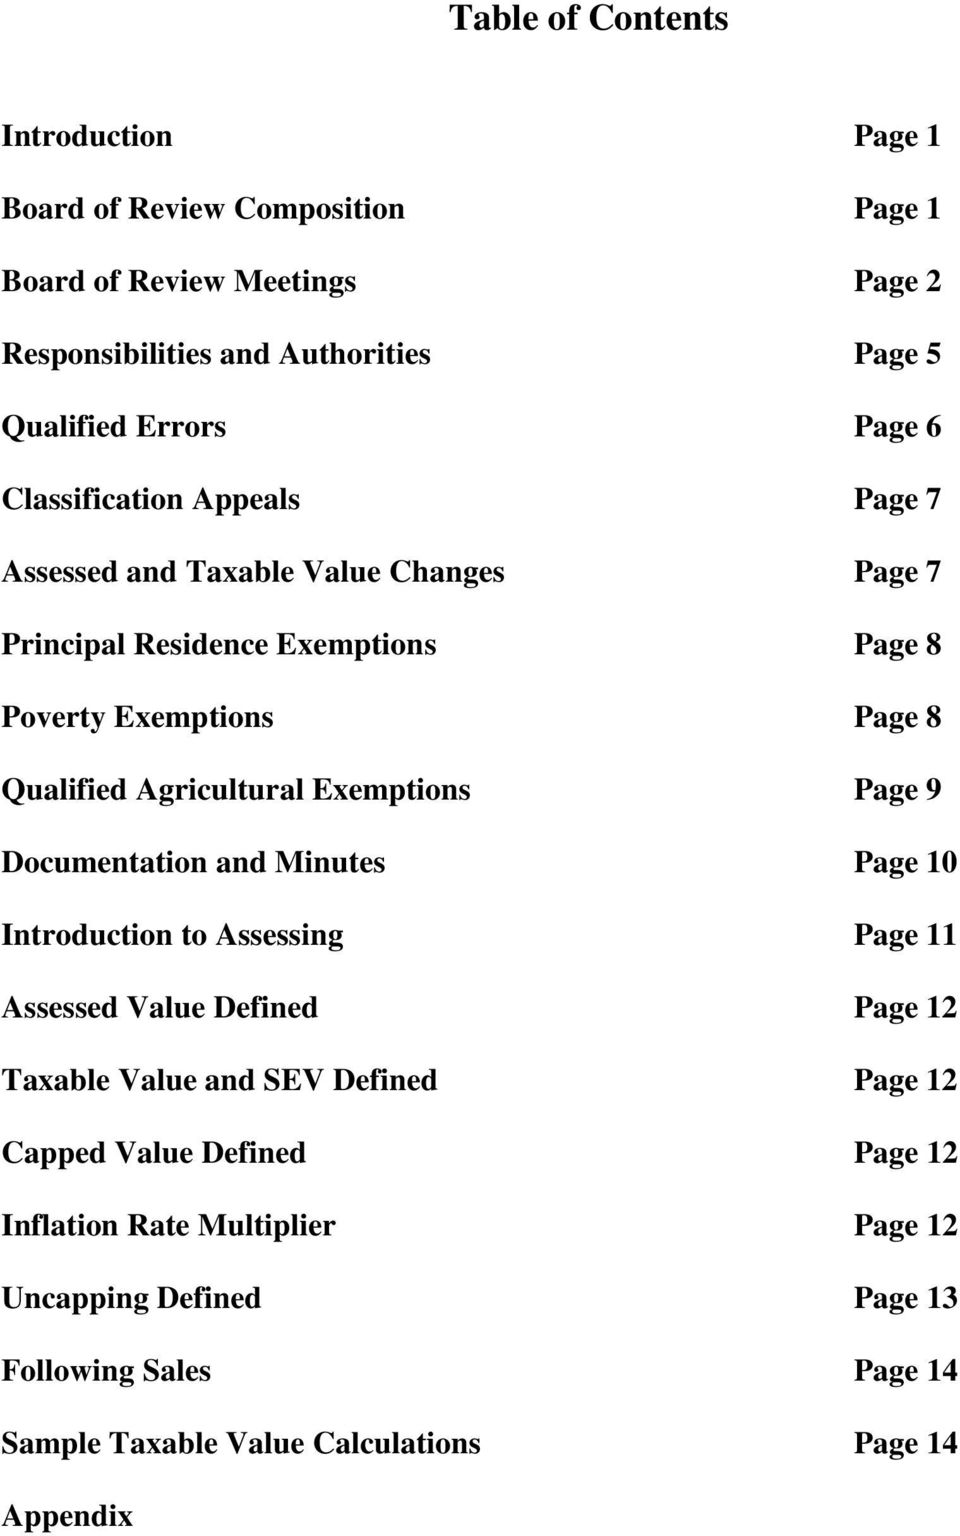 Agricultural Exemptions Page 9 Documentation and Minutes Page 10 Introduction to Assessing Page 11 Assessed Value Defined Page 12 Taxable Value and SEV Defined